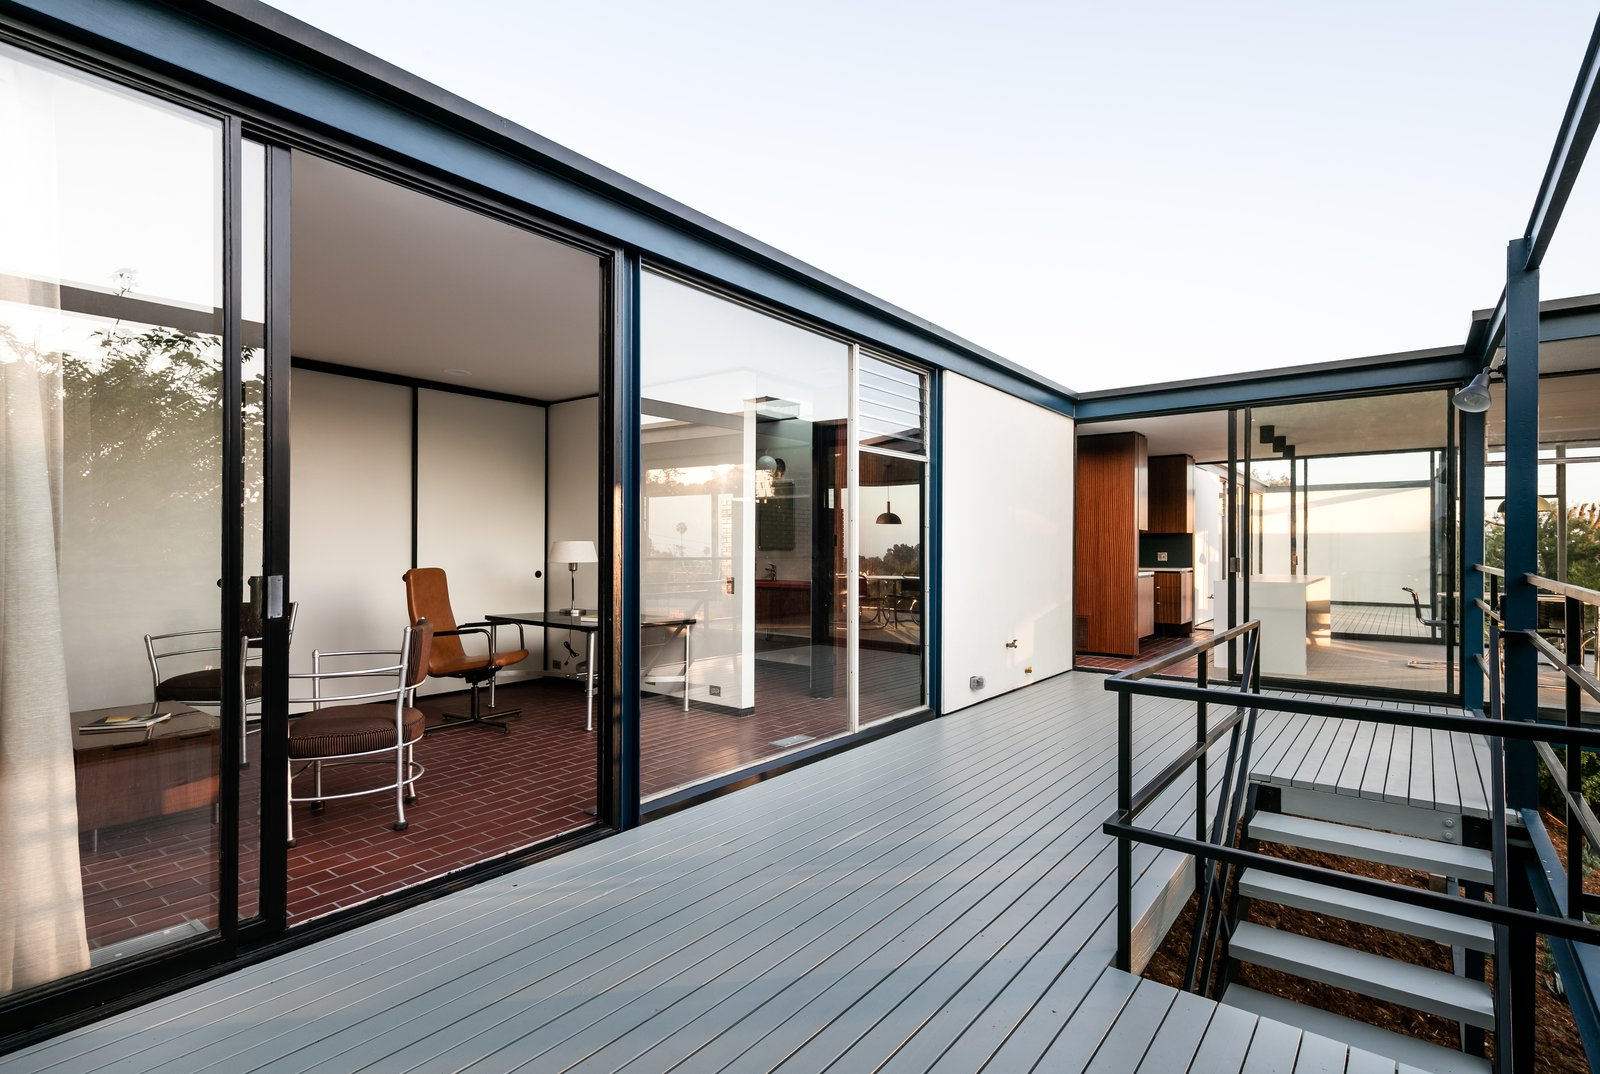 the-deck-enables-easy-outdoor-living-and-dining.jpg